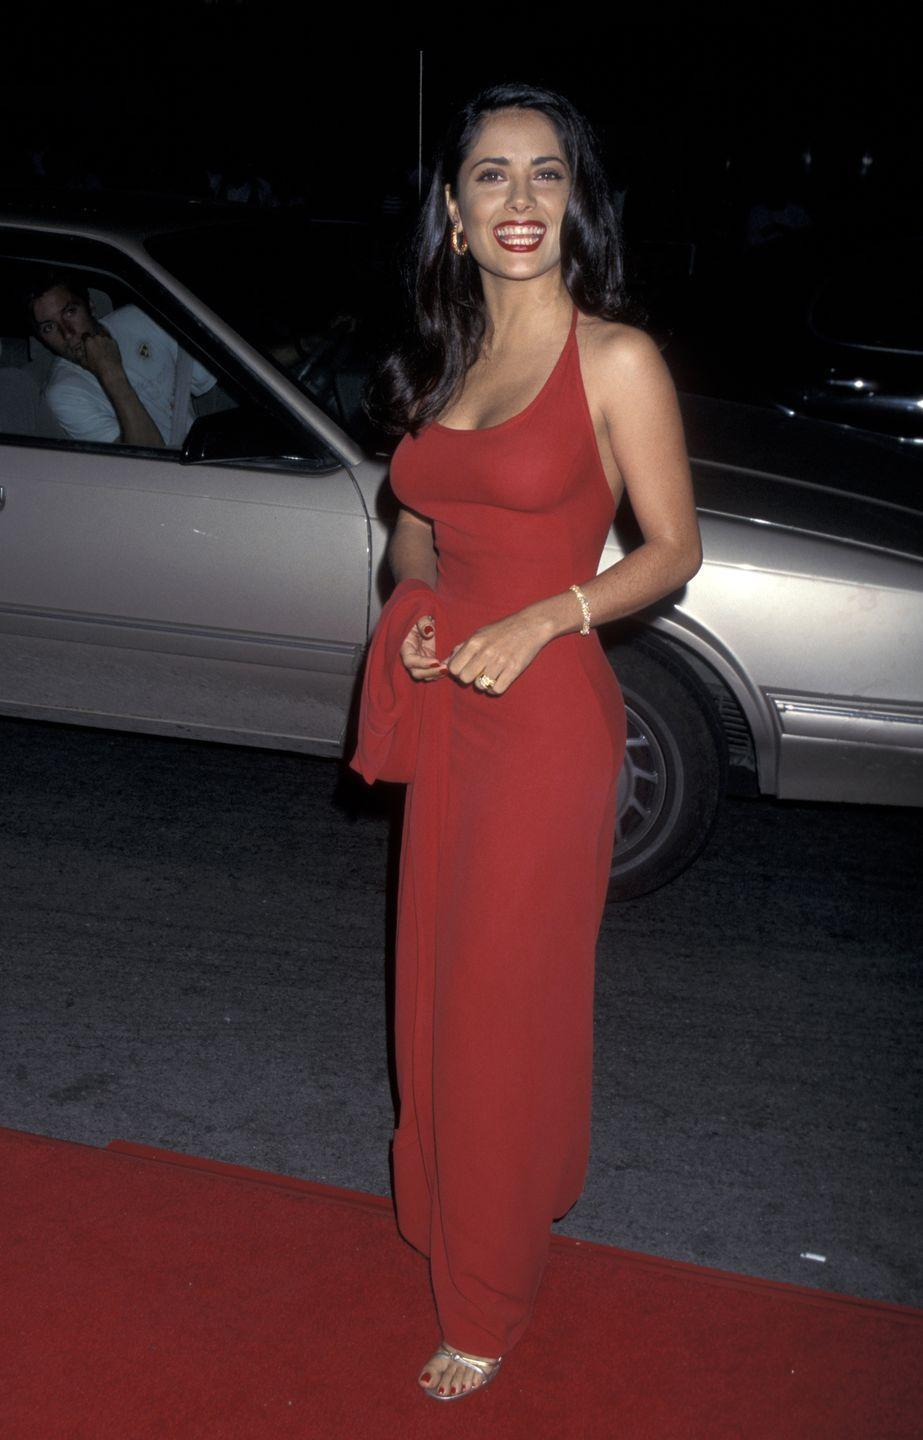 <p>Salma Hayek proved her star power when she arrived at the premiere of one of her first films, <em>Desperado</em>, dripping of Hollywood glamour. </p>